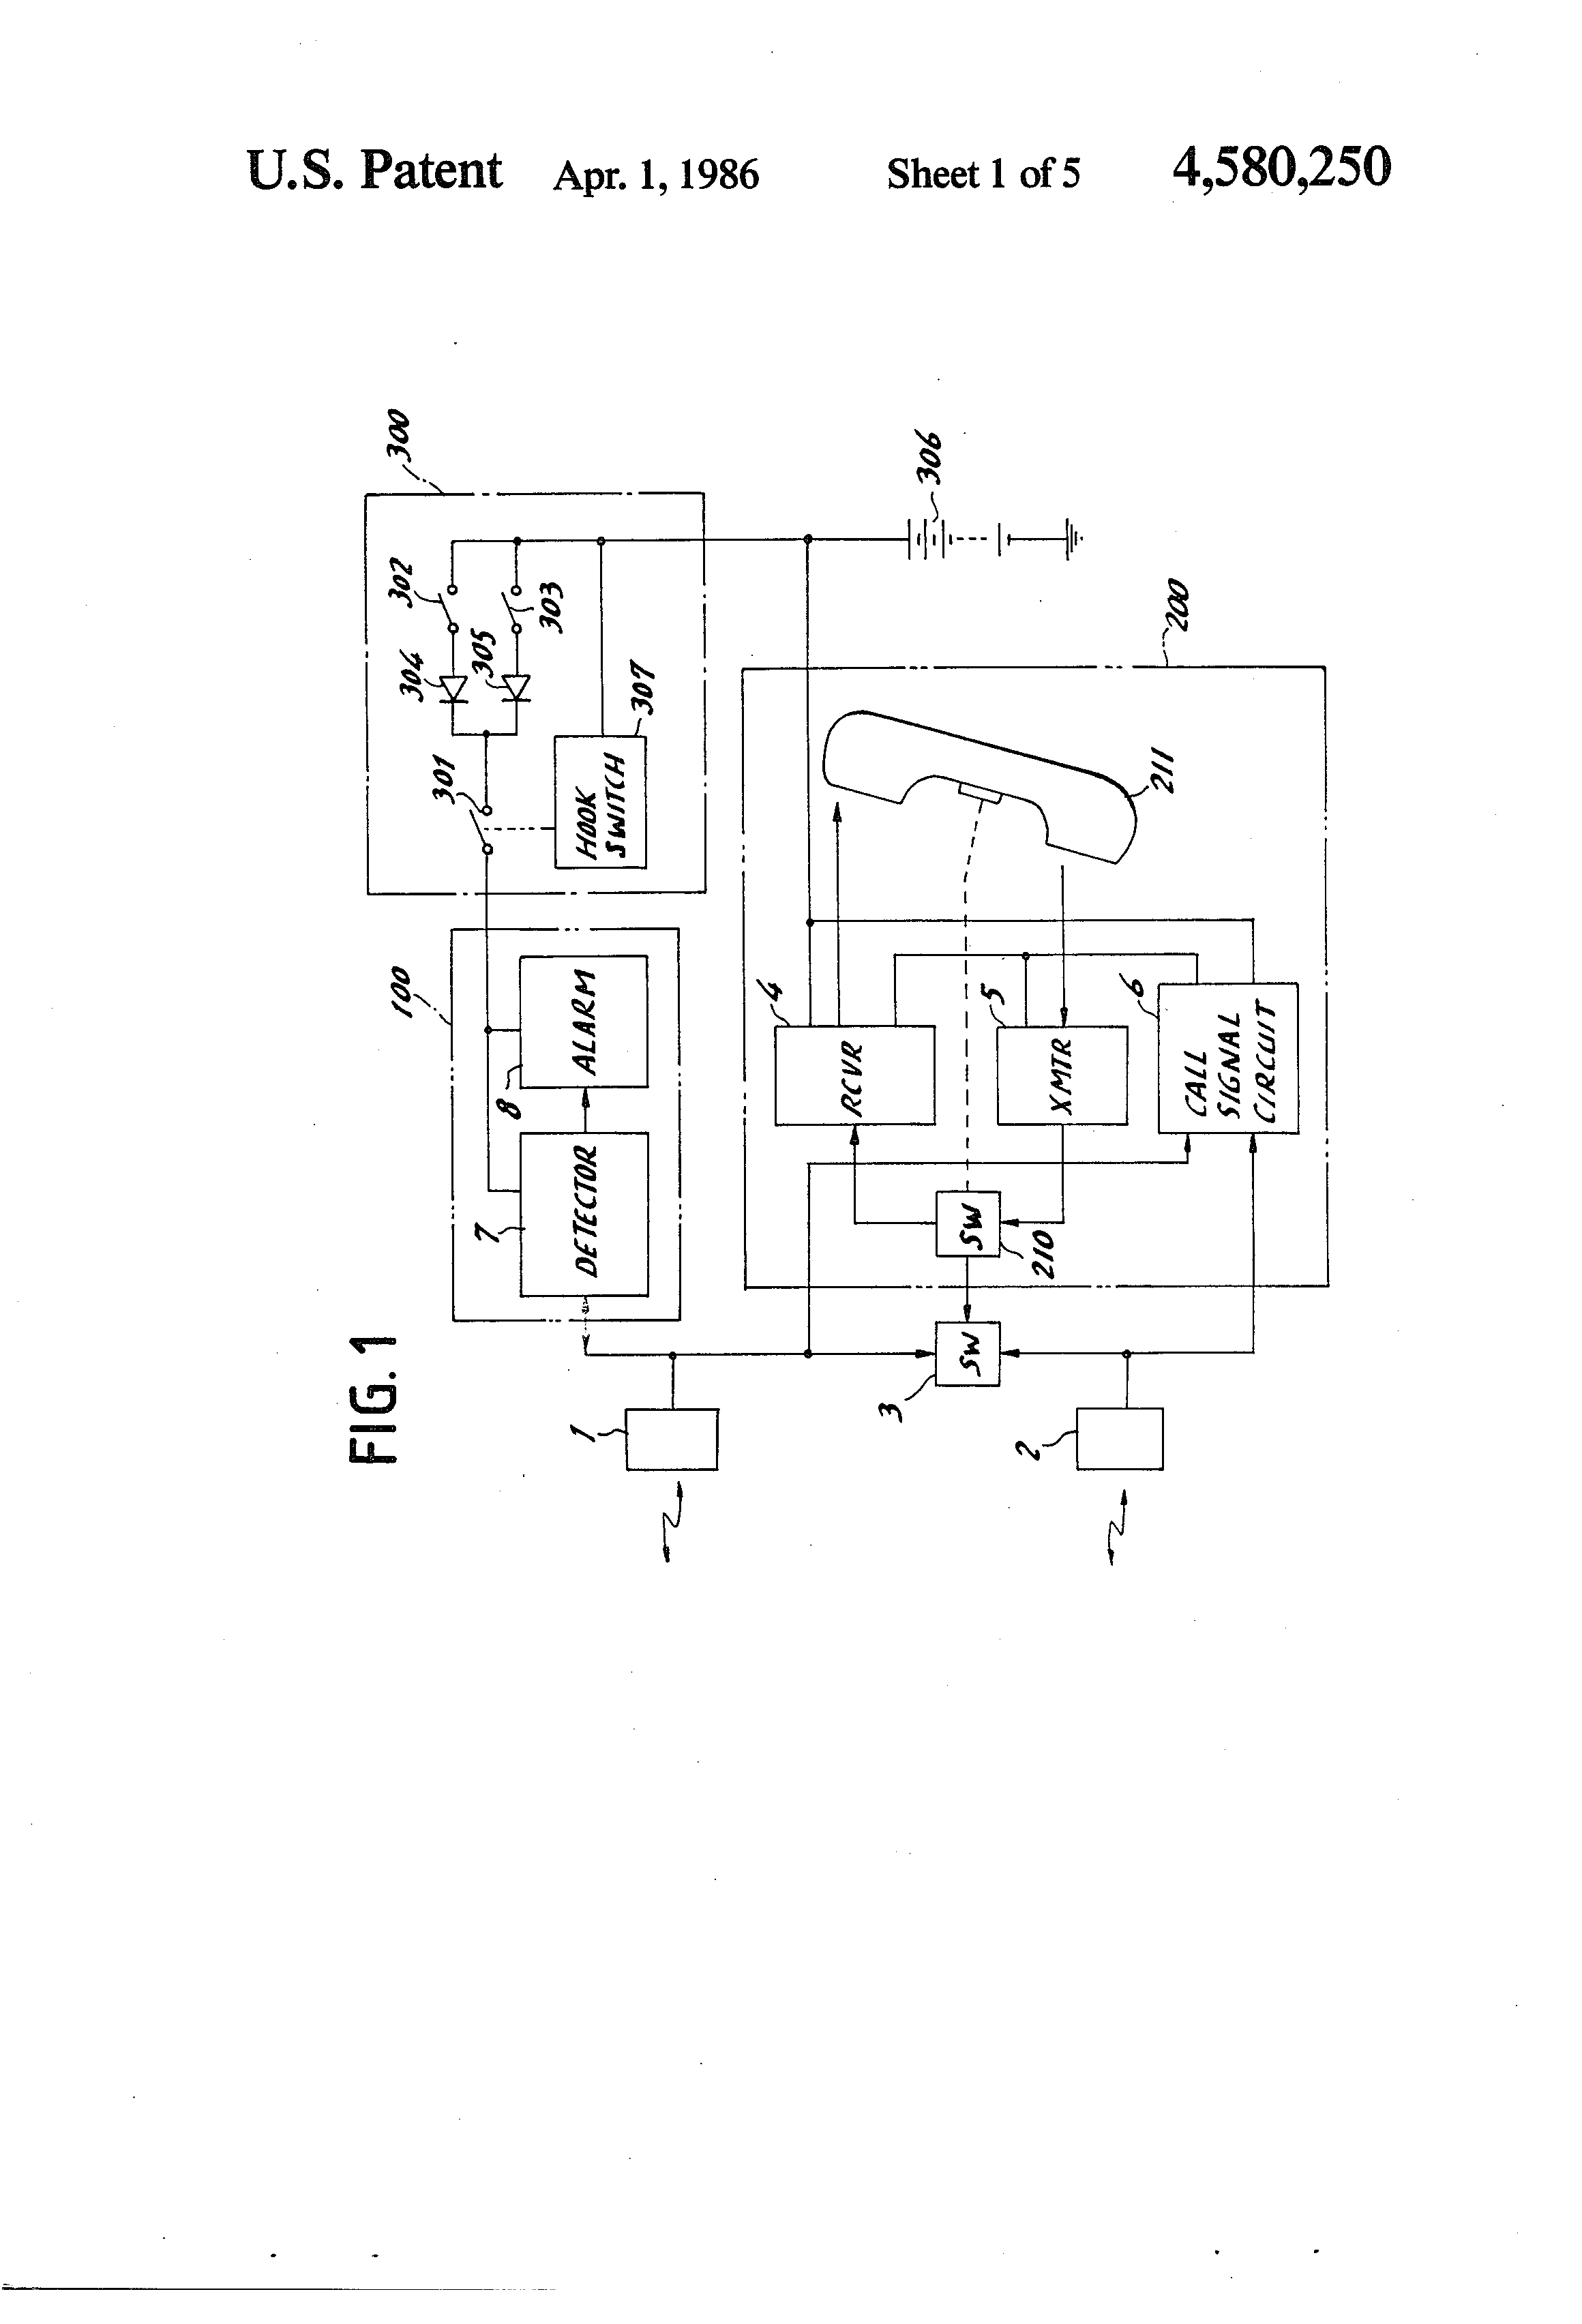 Patent Us4580250 Ultrasonic Detection And Communication System For Digital Combination Lock Using Cd4013 Simple Electronic Circuit Drawing